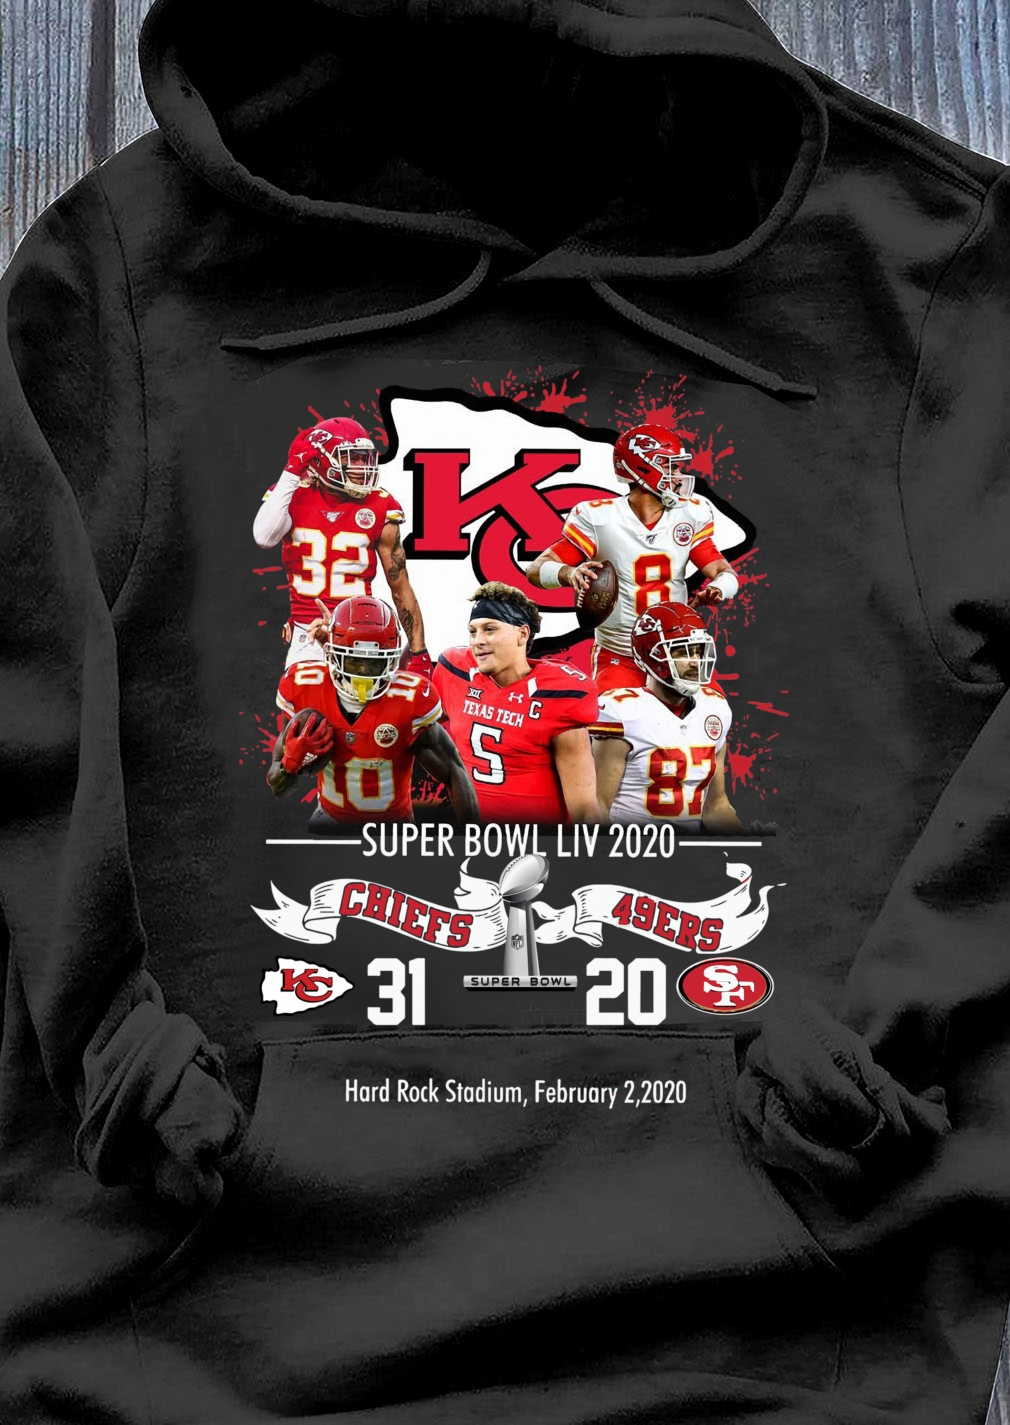 Kansas City Chiefs NFL Super Bowl Liv 2020 Vs San Francisco 49ers shirt Hoodie